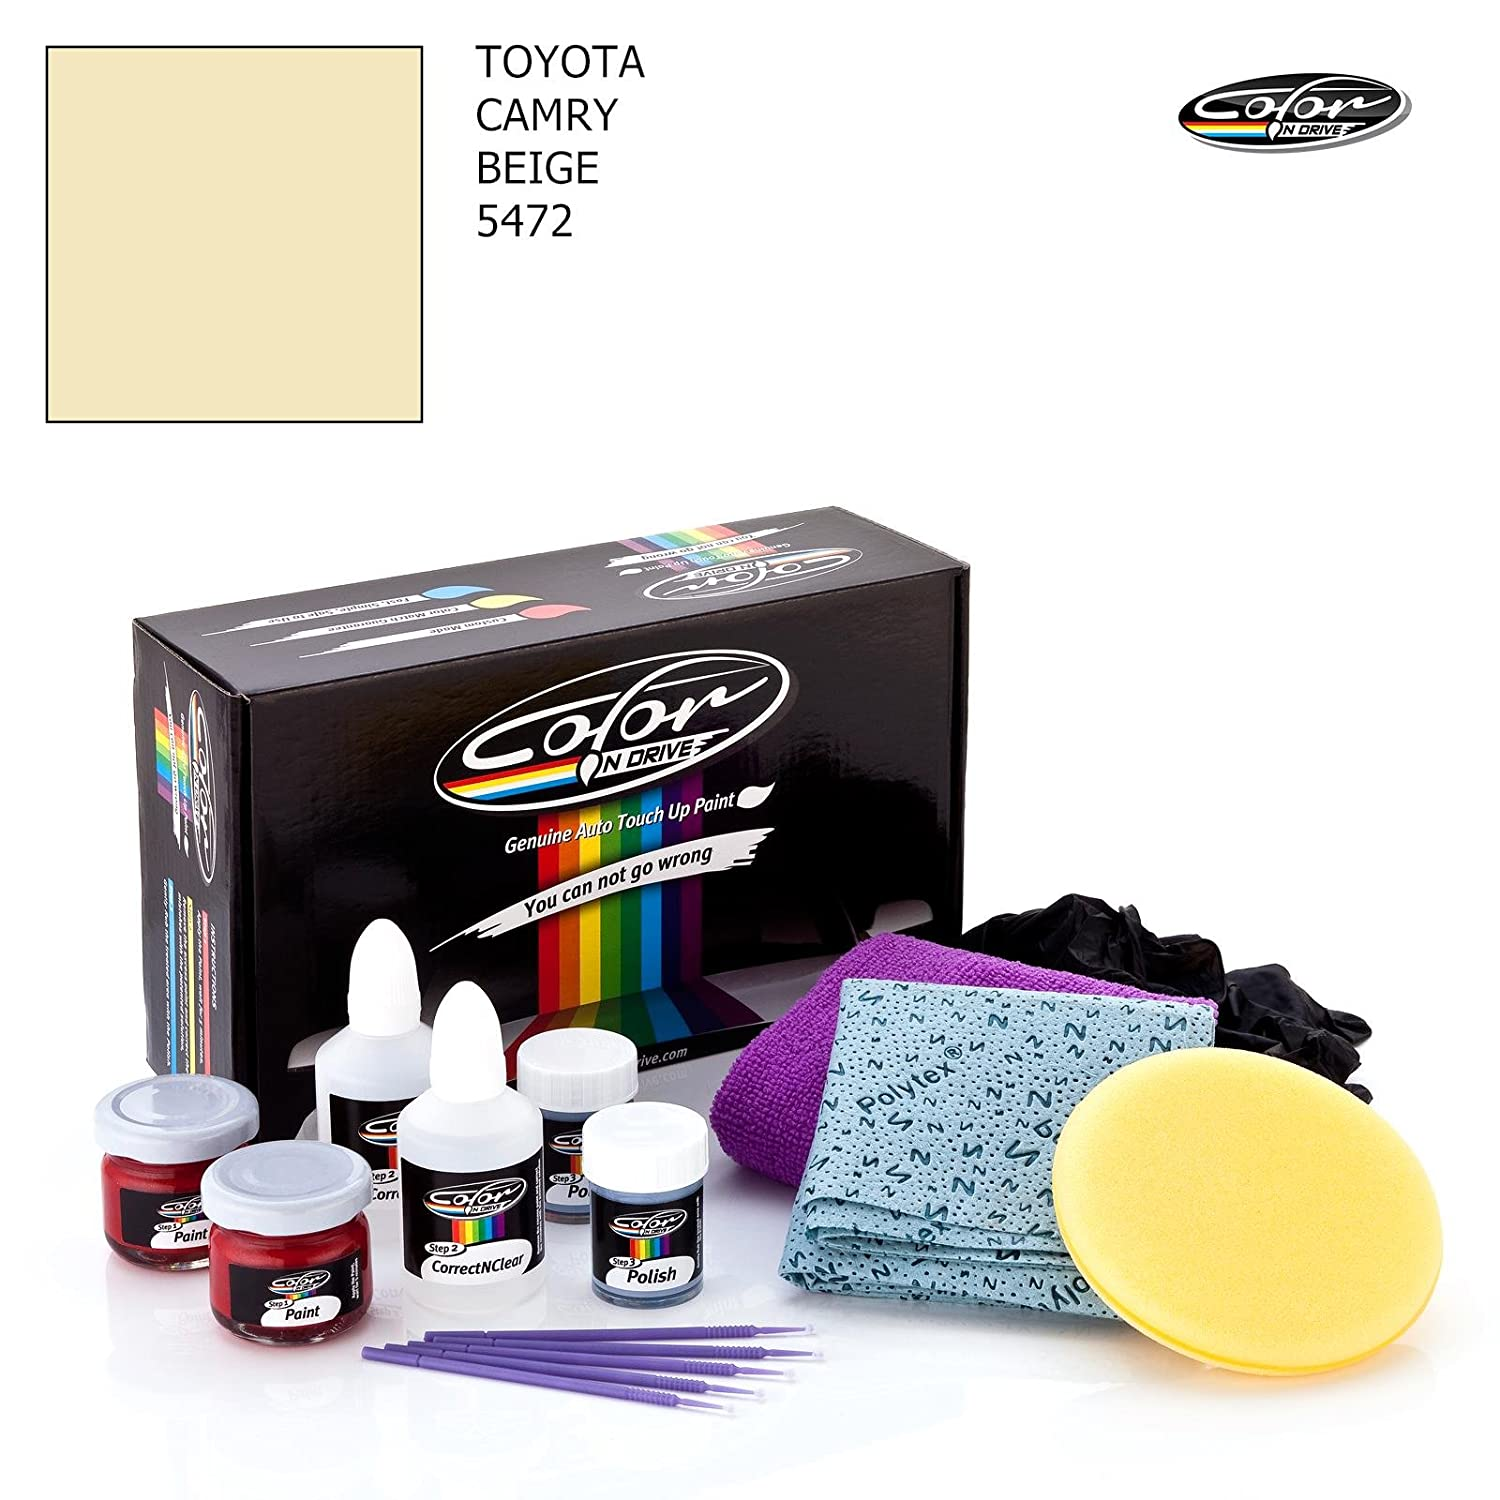 Toyota Camry Beige 5472 Color N Drive Touch Up Wire Diagram Labels Paint System For Chips And Scratches Basic Pack Automotive